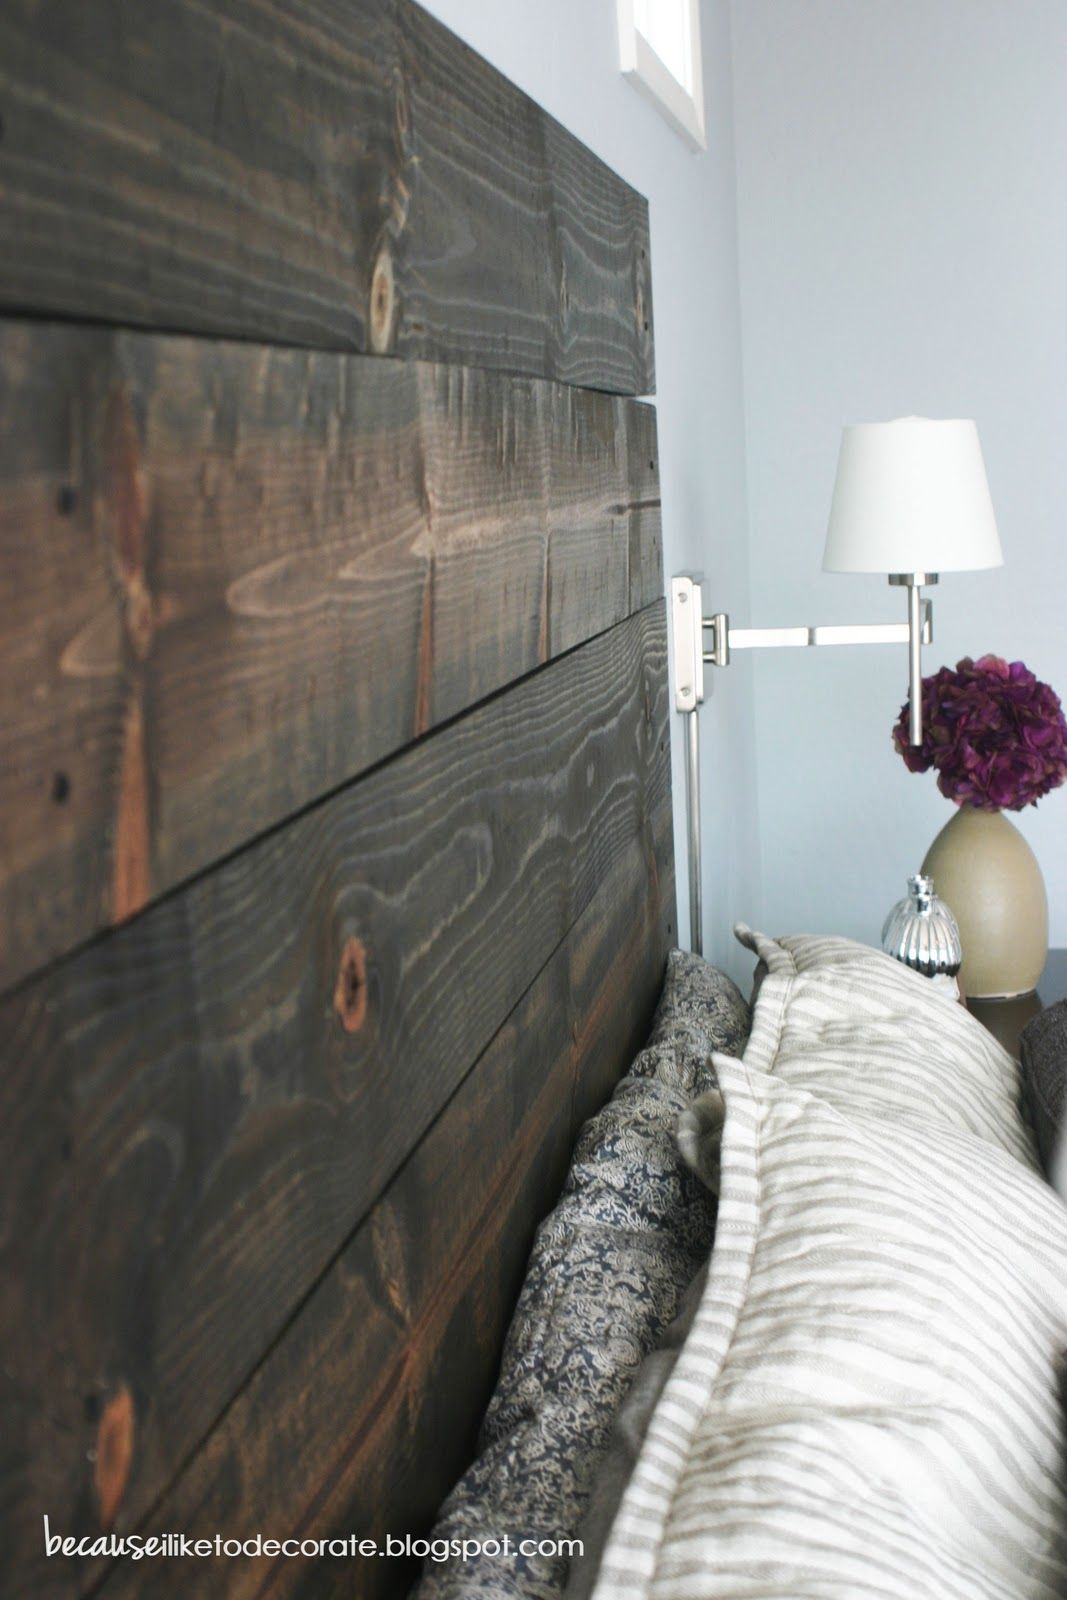 headboard made from 2x4's and stained. each is individually drilled into the wall. Cheap and easy!